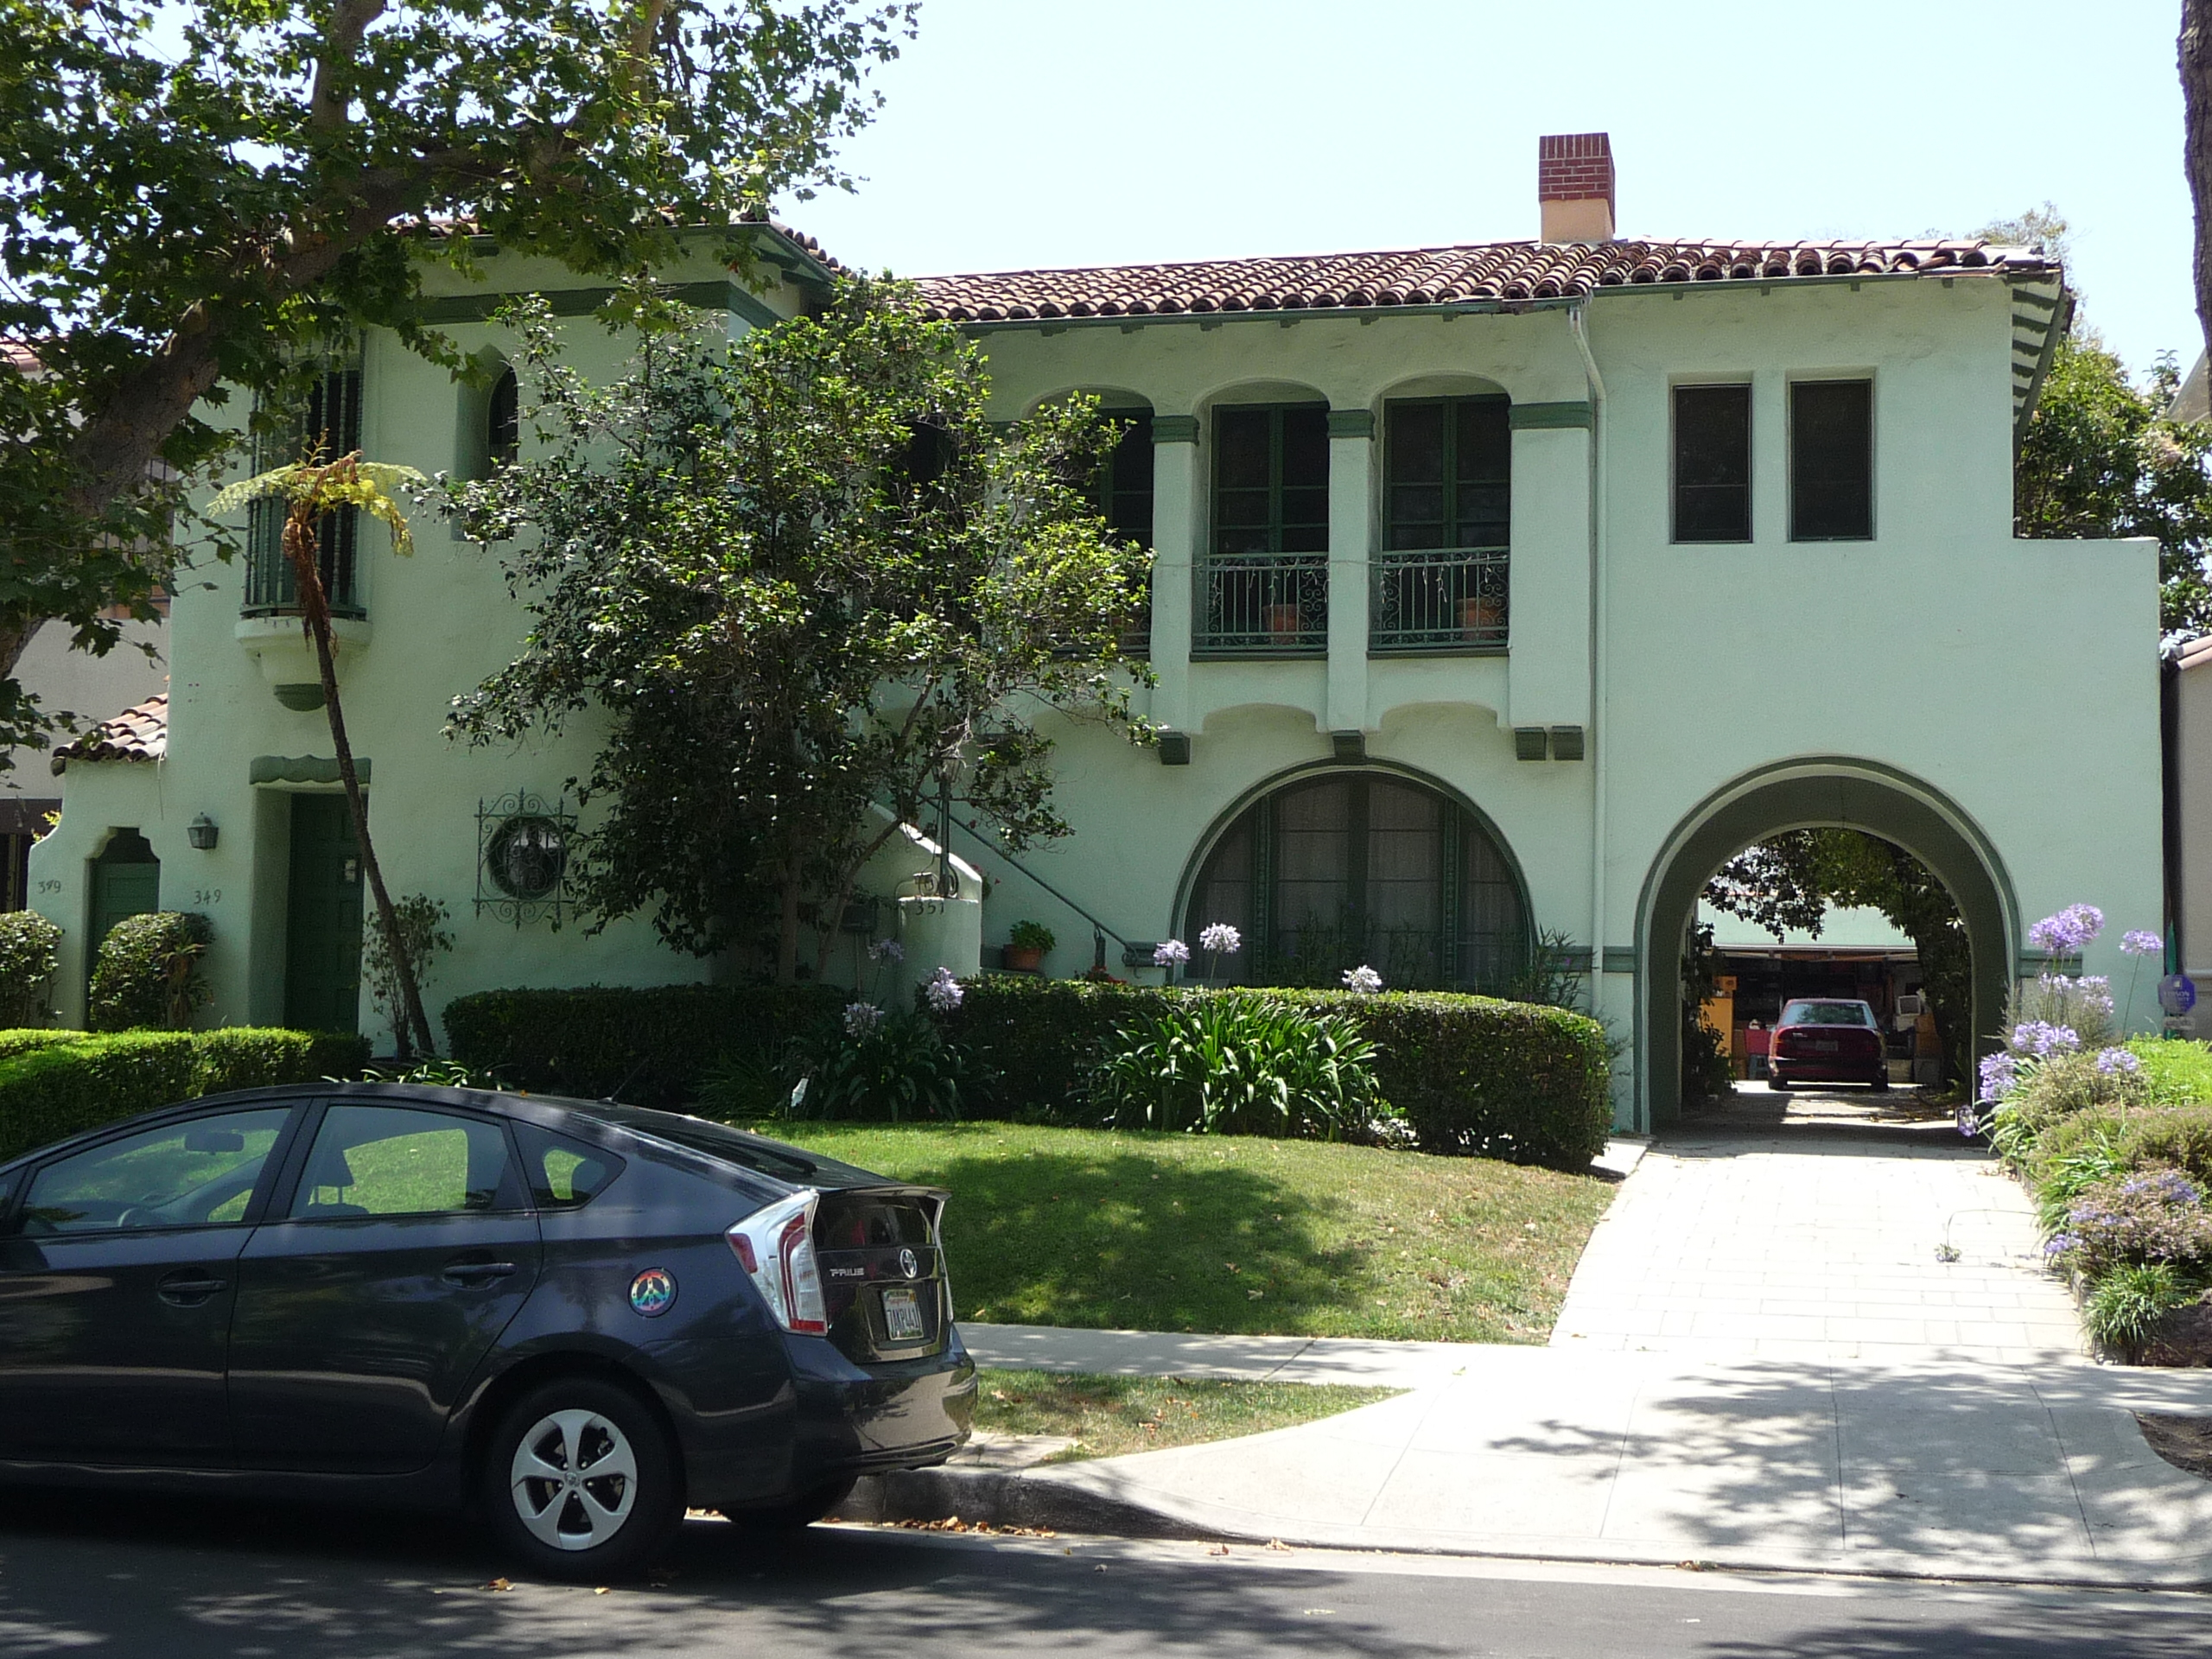 351 N MANSFIELD AVE - PHOTO